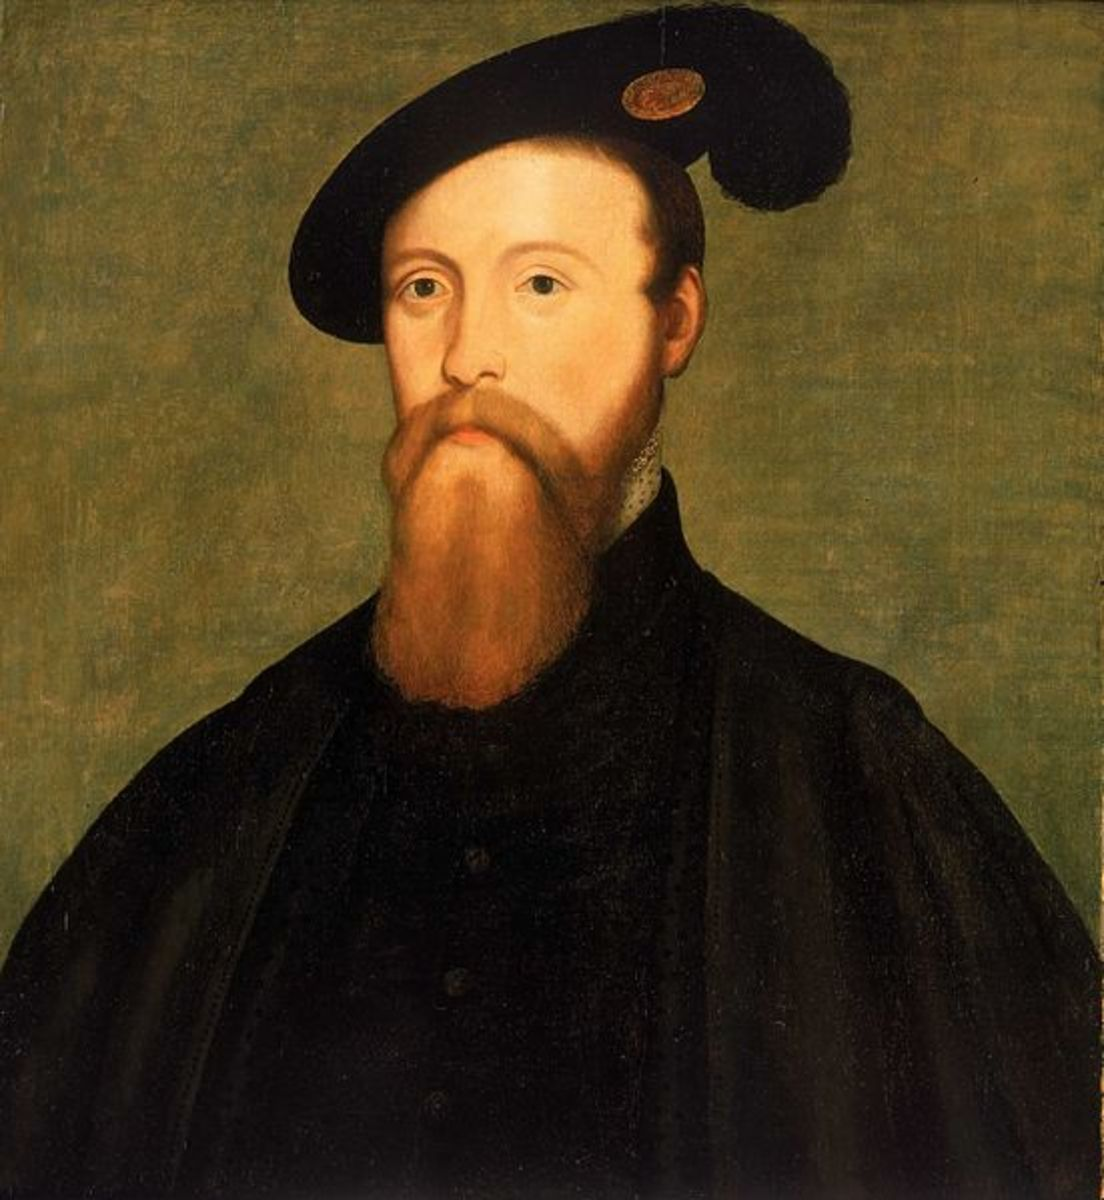 Thomas Seymour was the man Katherine wanted to marry before Henry VIII